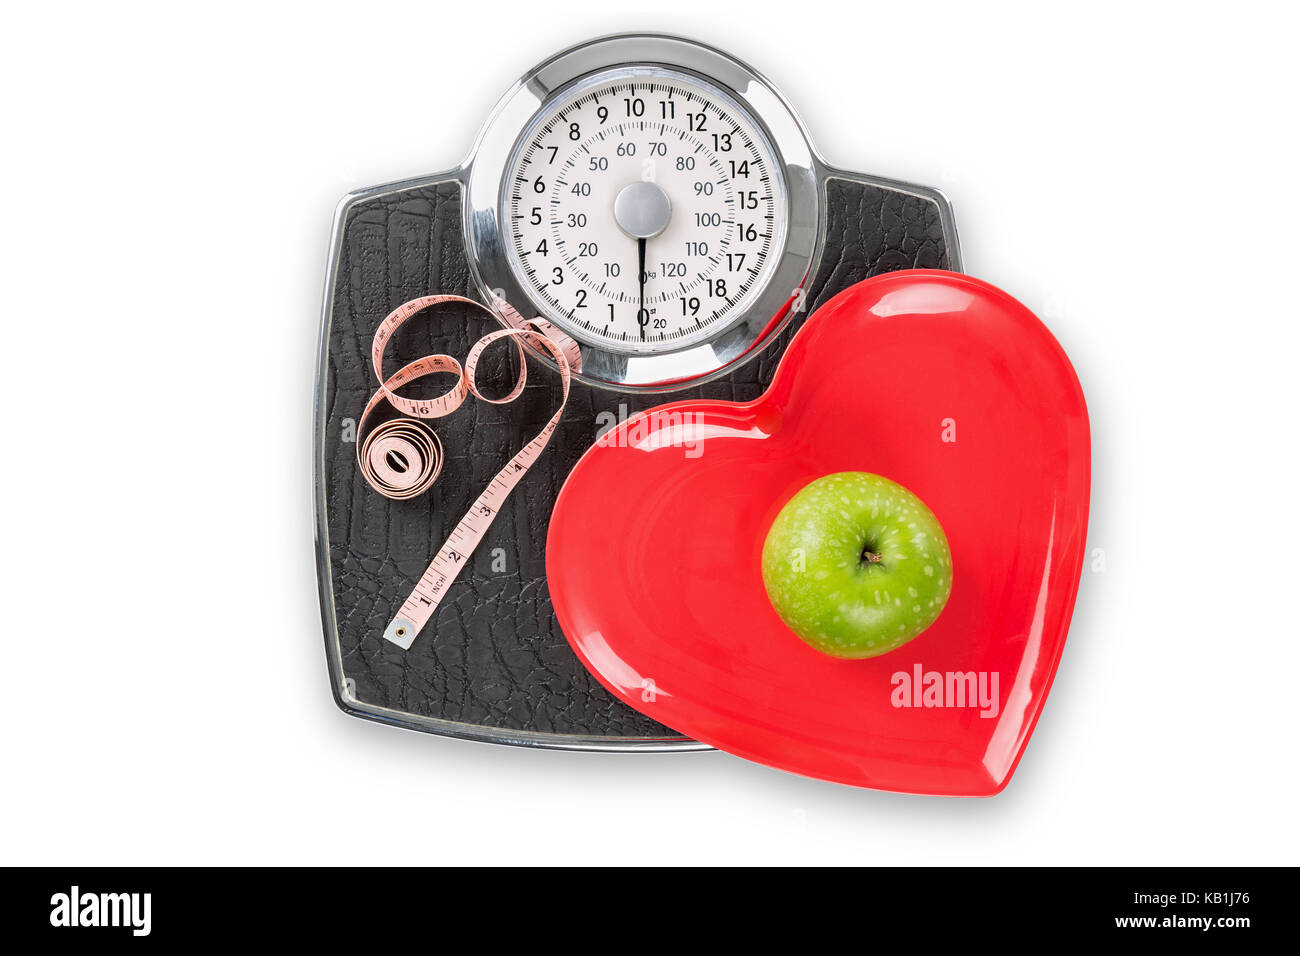 Healthy living scales concept isolated on white with clipping path. - Stock Image